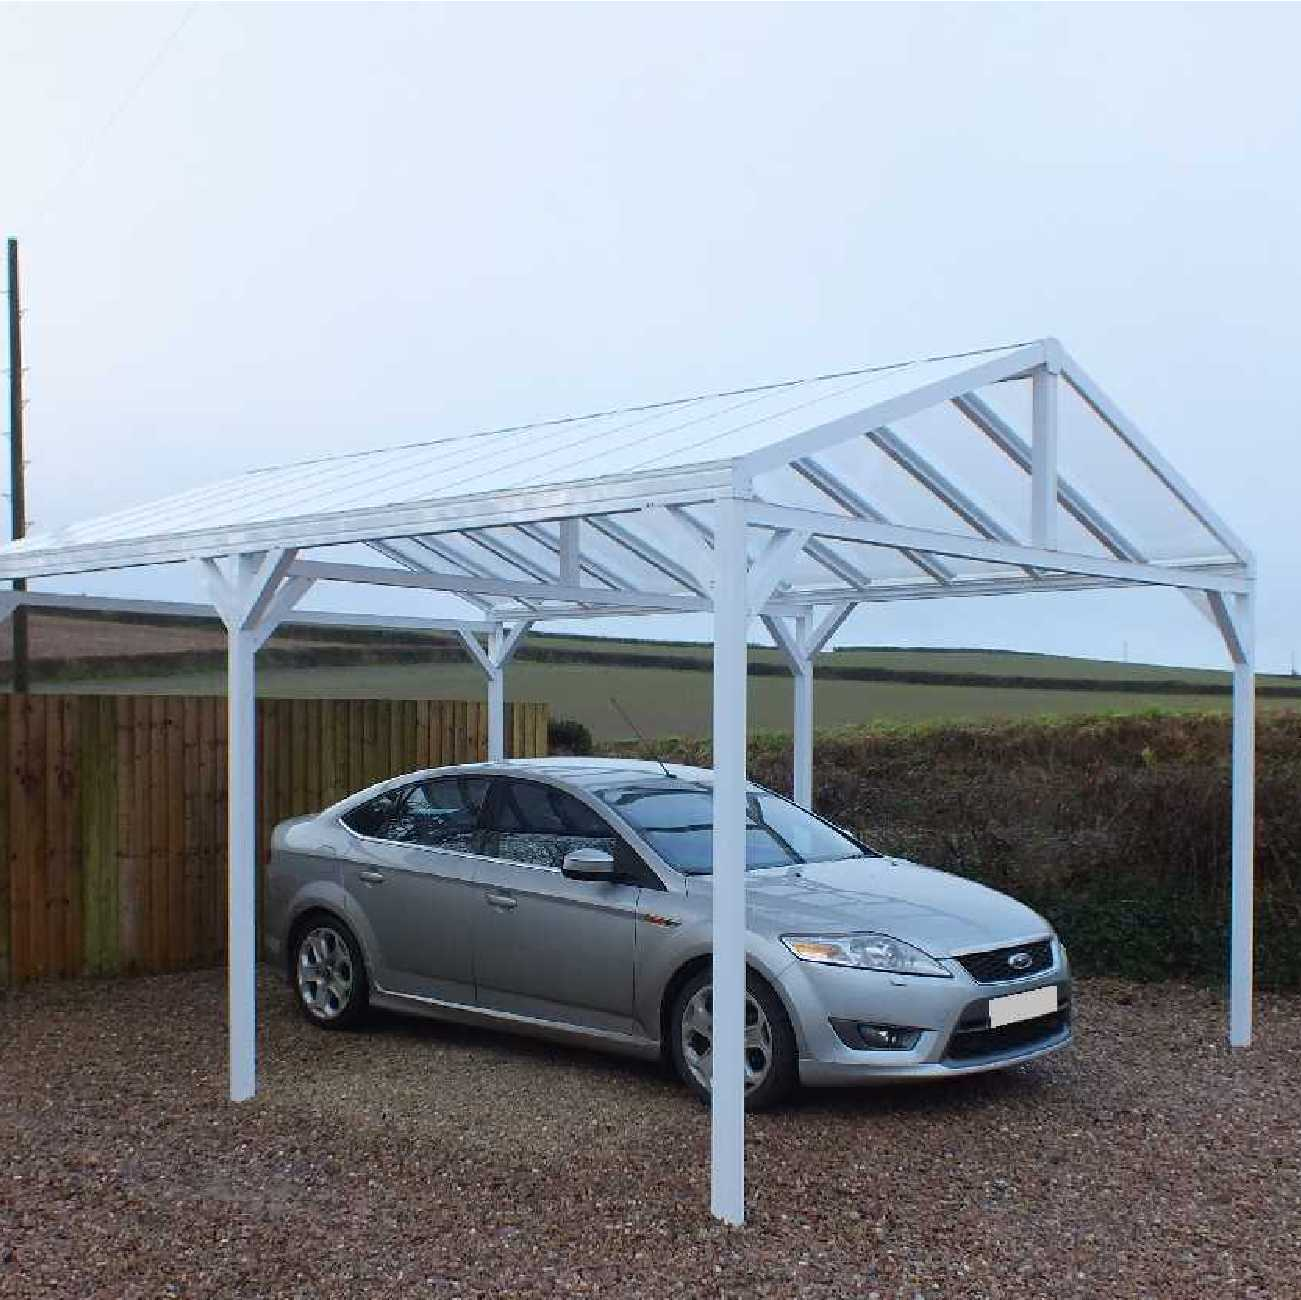 Affordable Omega Smart Free-Standing, Gable-Roof (type 1) Canopy with 16mm Polycarbonate Glazing - 8.4m (W) x 4.0m (P), (8) Supporting Posts